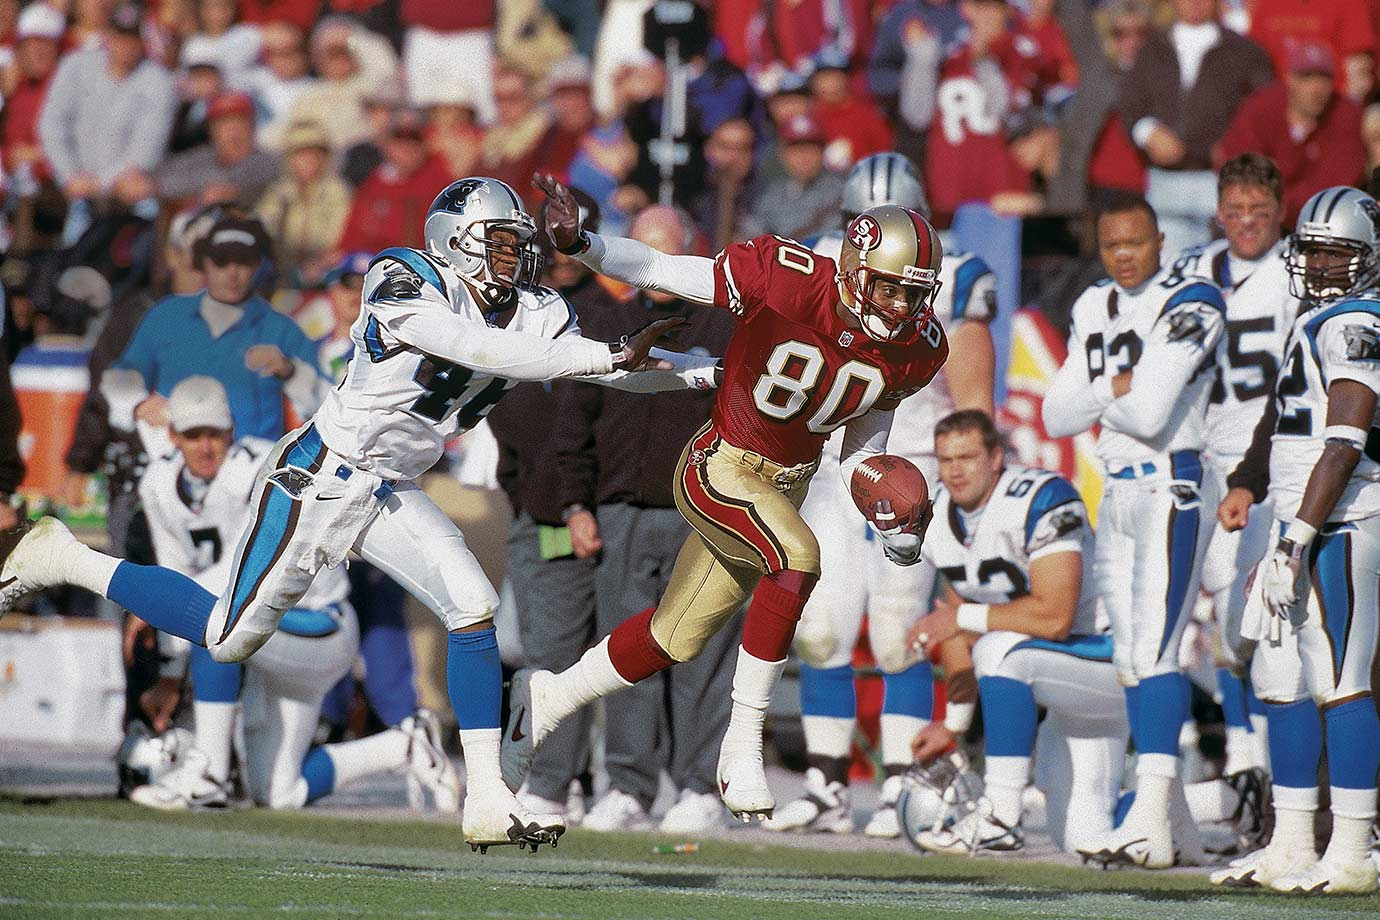 Nov. 8, 1998 — San Francisco 49ers vs. Carolina Panthers